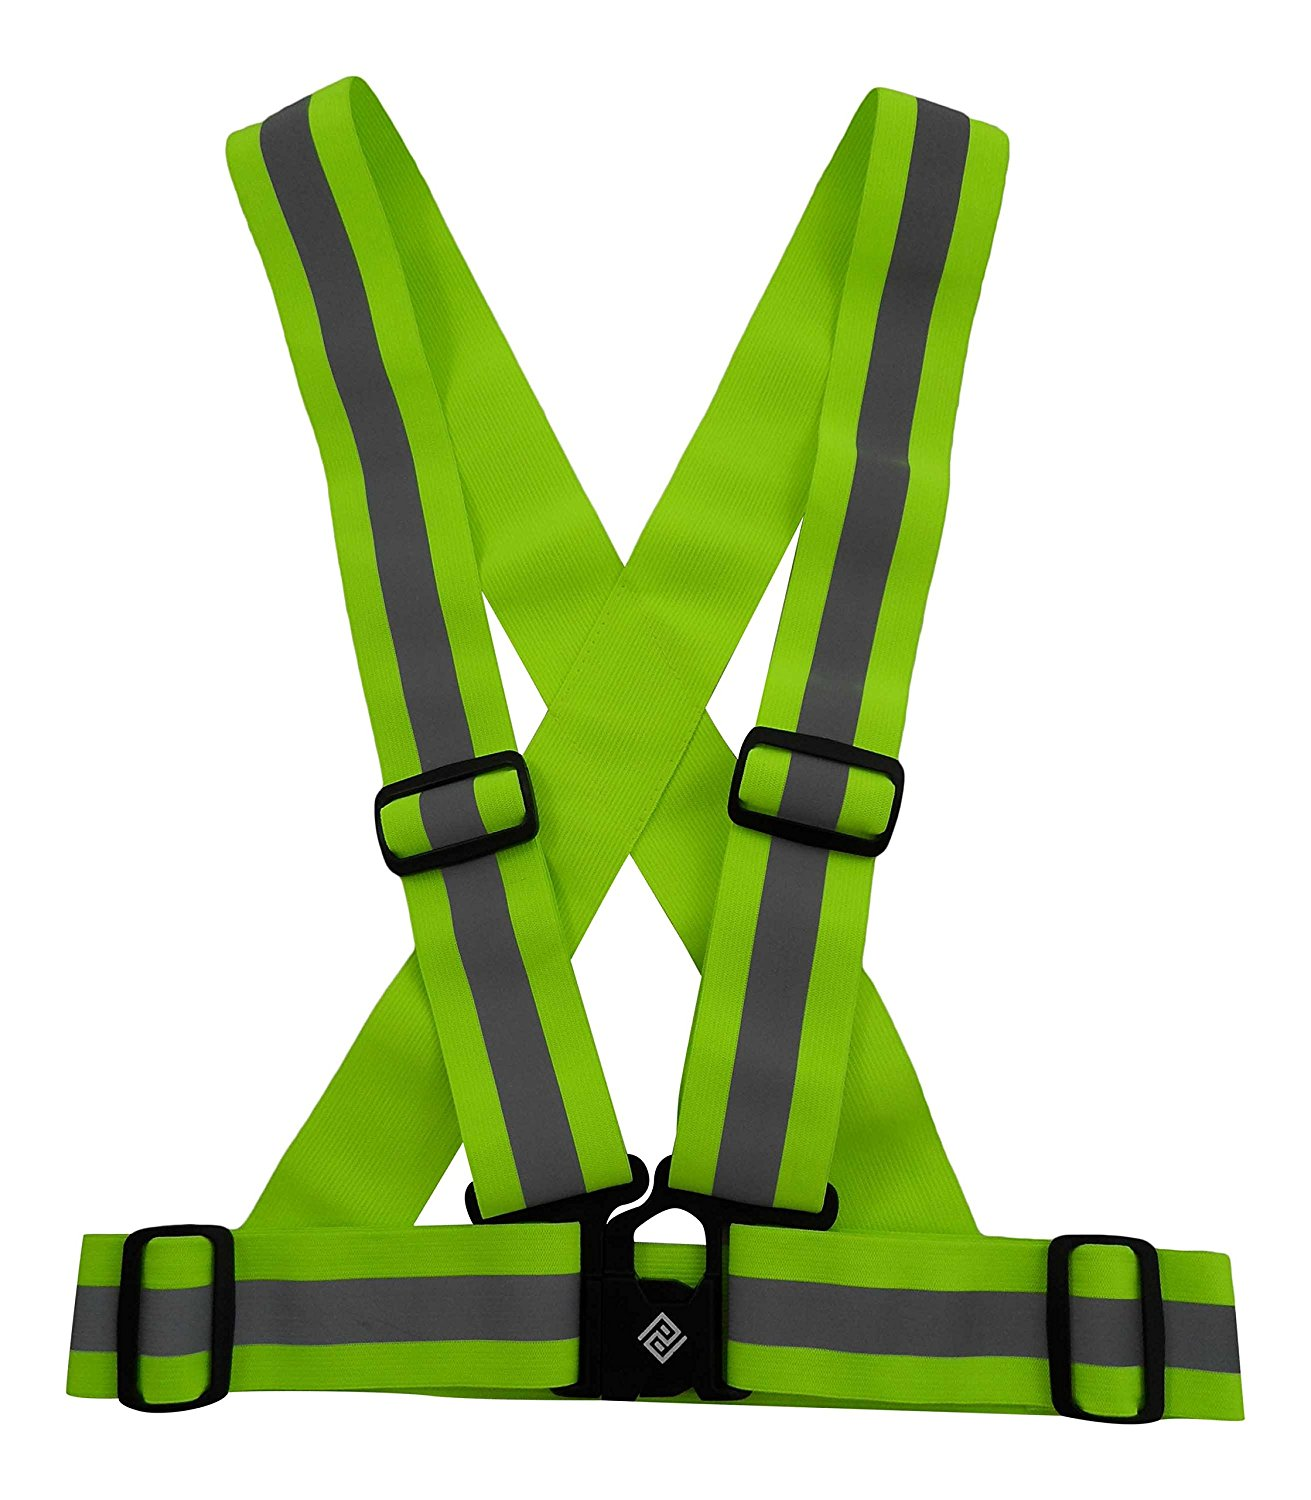 Safety Reflective Vest by Perkeen Products Belt with High Visibility Adjustable Straps for Sports, Construction Workers, Dog Walkers, Runners, Joggers, Mail Carriers, Motorcycle Riders, School Crossing Guards. 2 inch wide straps